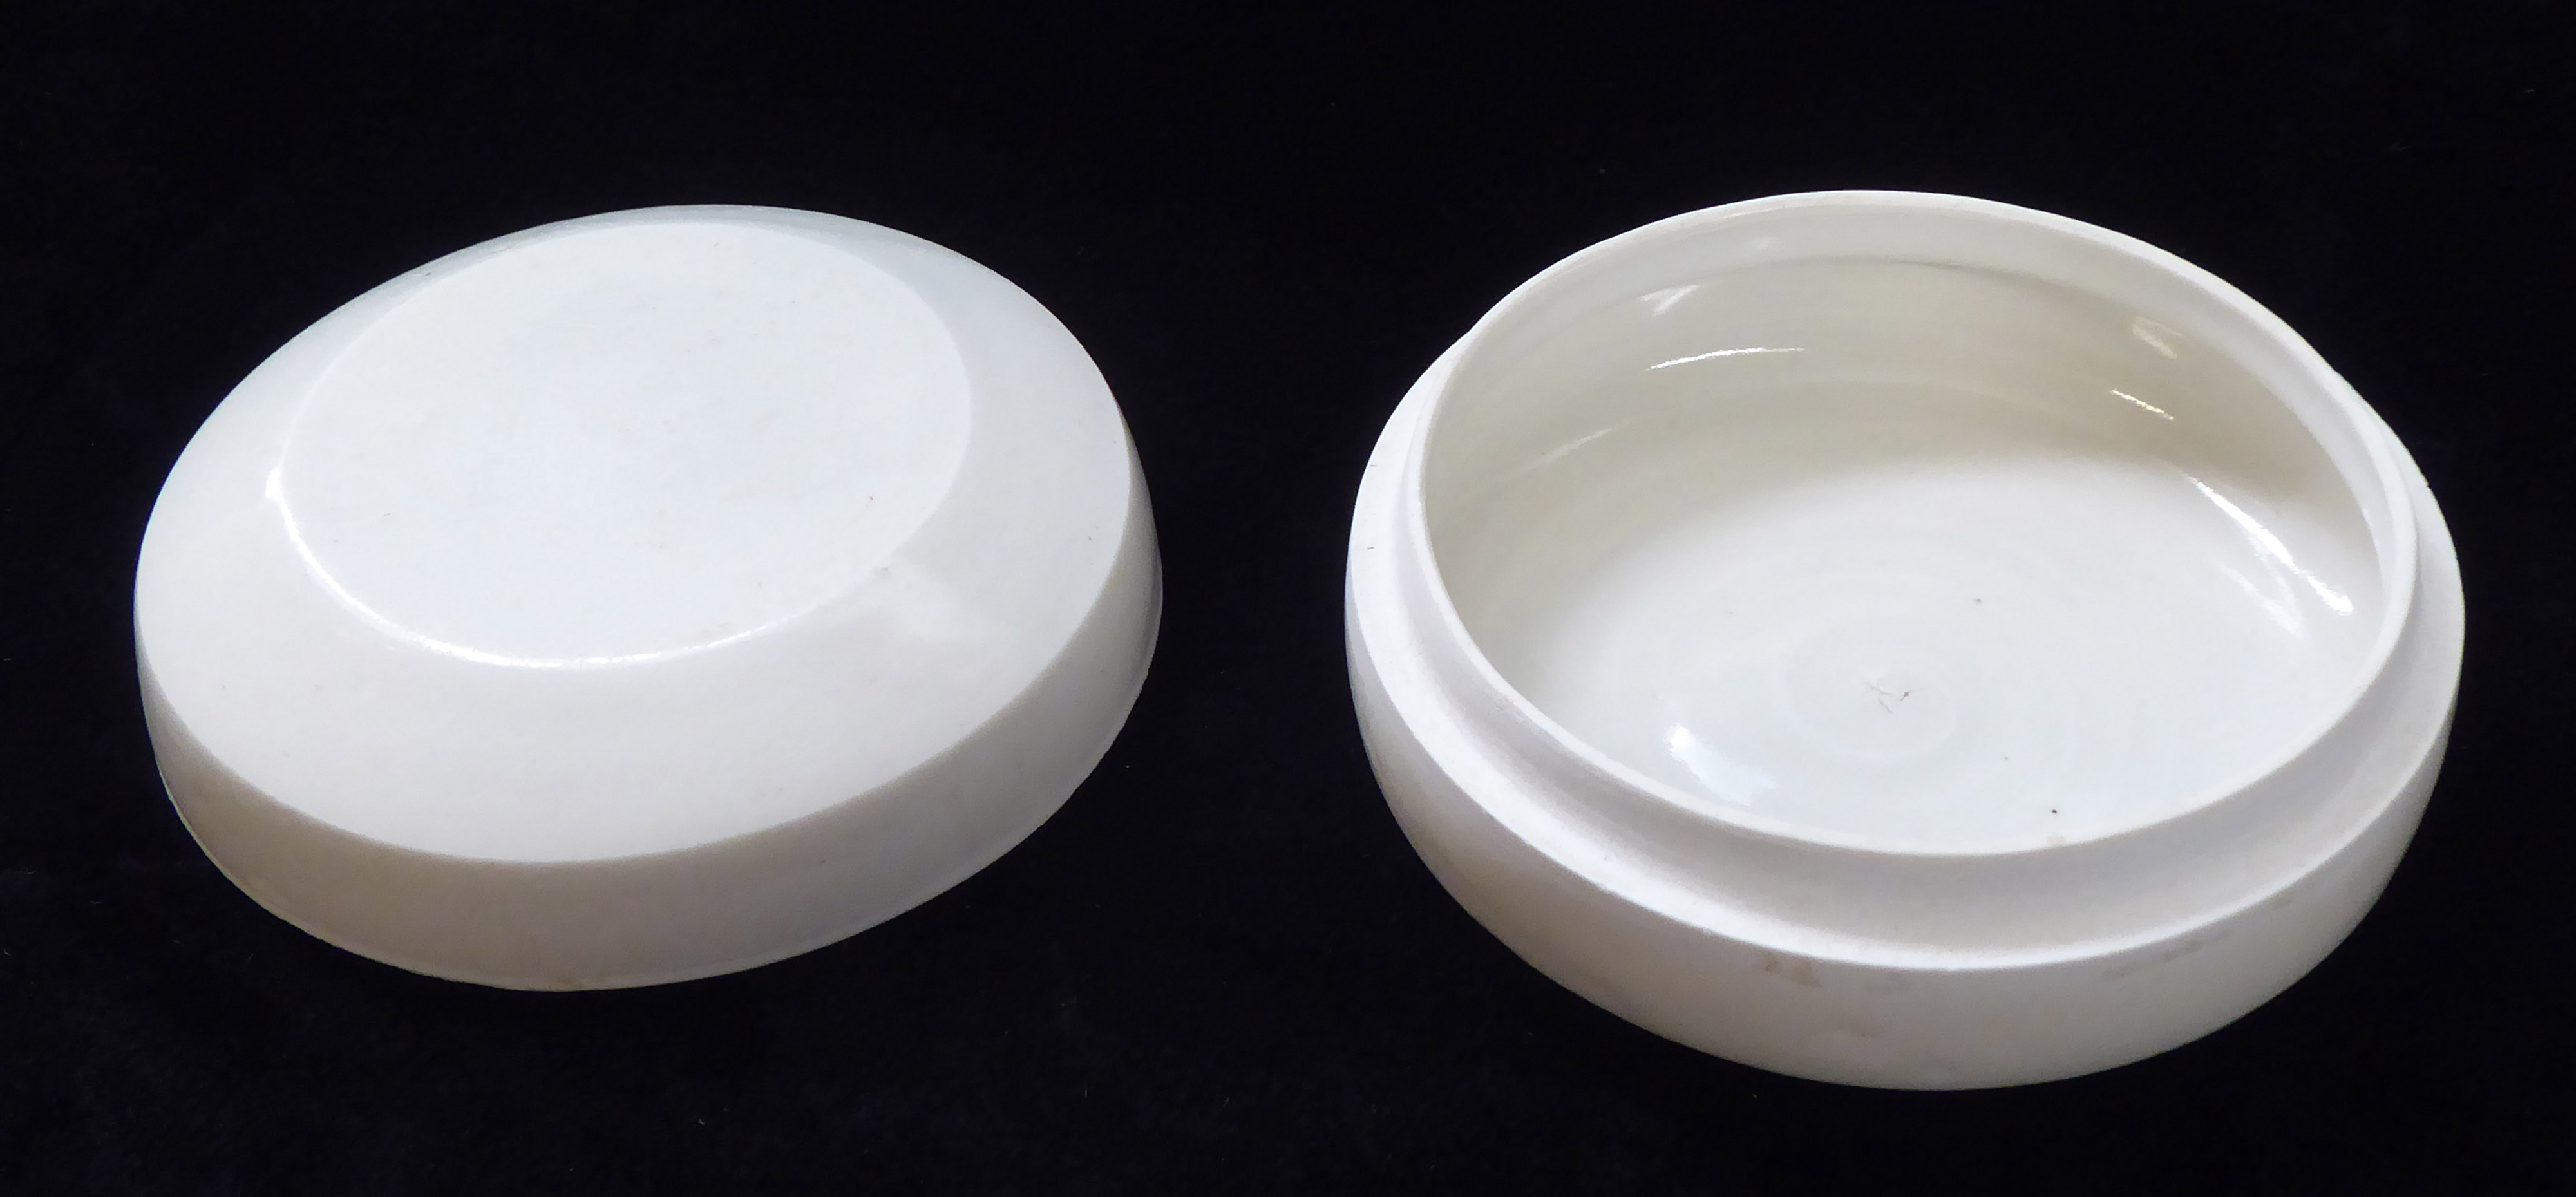 Lot 163 - A CHINESE WHITE GLAZE SONG DYNASTY 'DING' WARE 'LIDDED BOX Spherical form of plain design with three